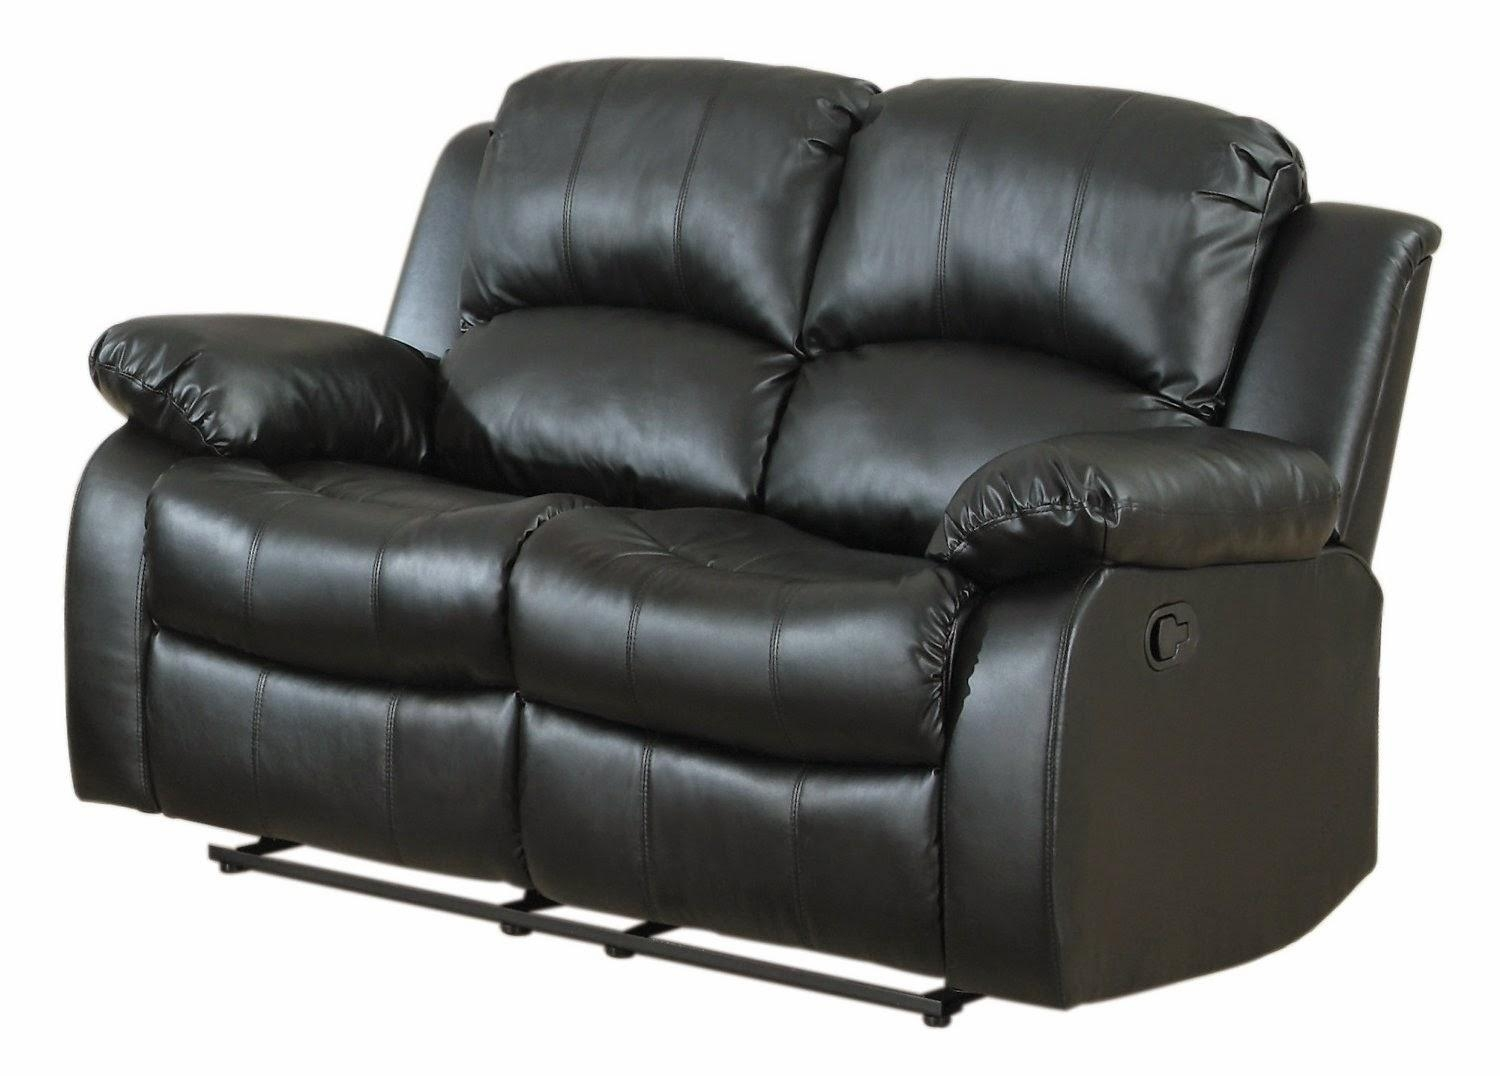 Sofas Center : Costco Leather Reclining Sofa Sofas And Pertaining To Berkline Reclining Sofas (View 8 of 20)